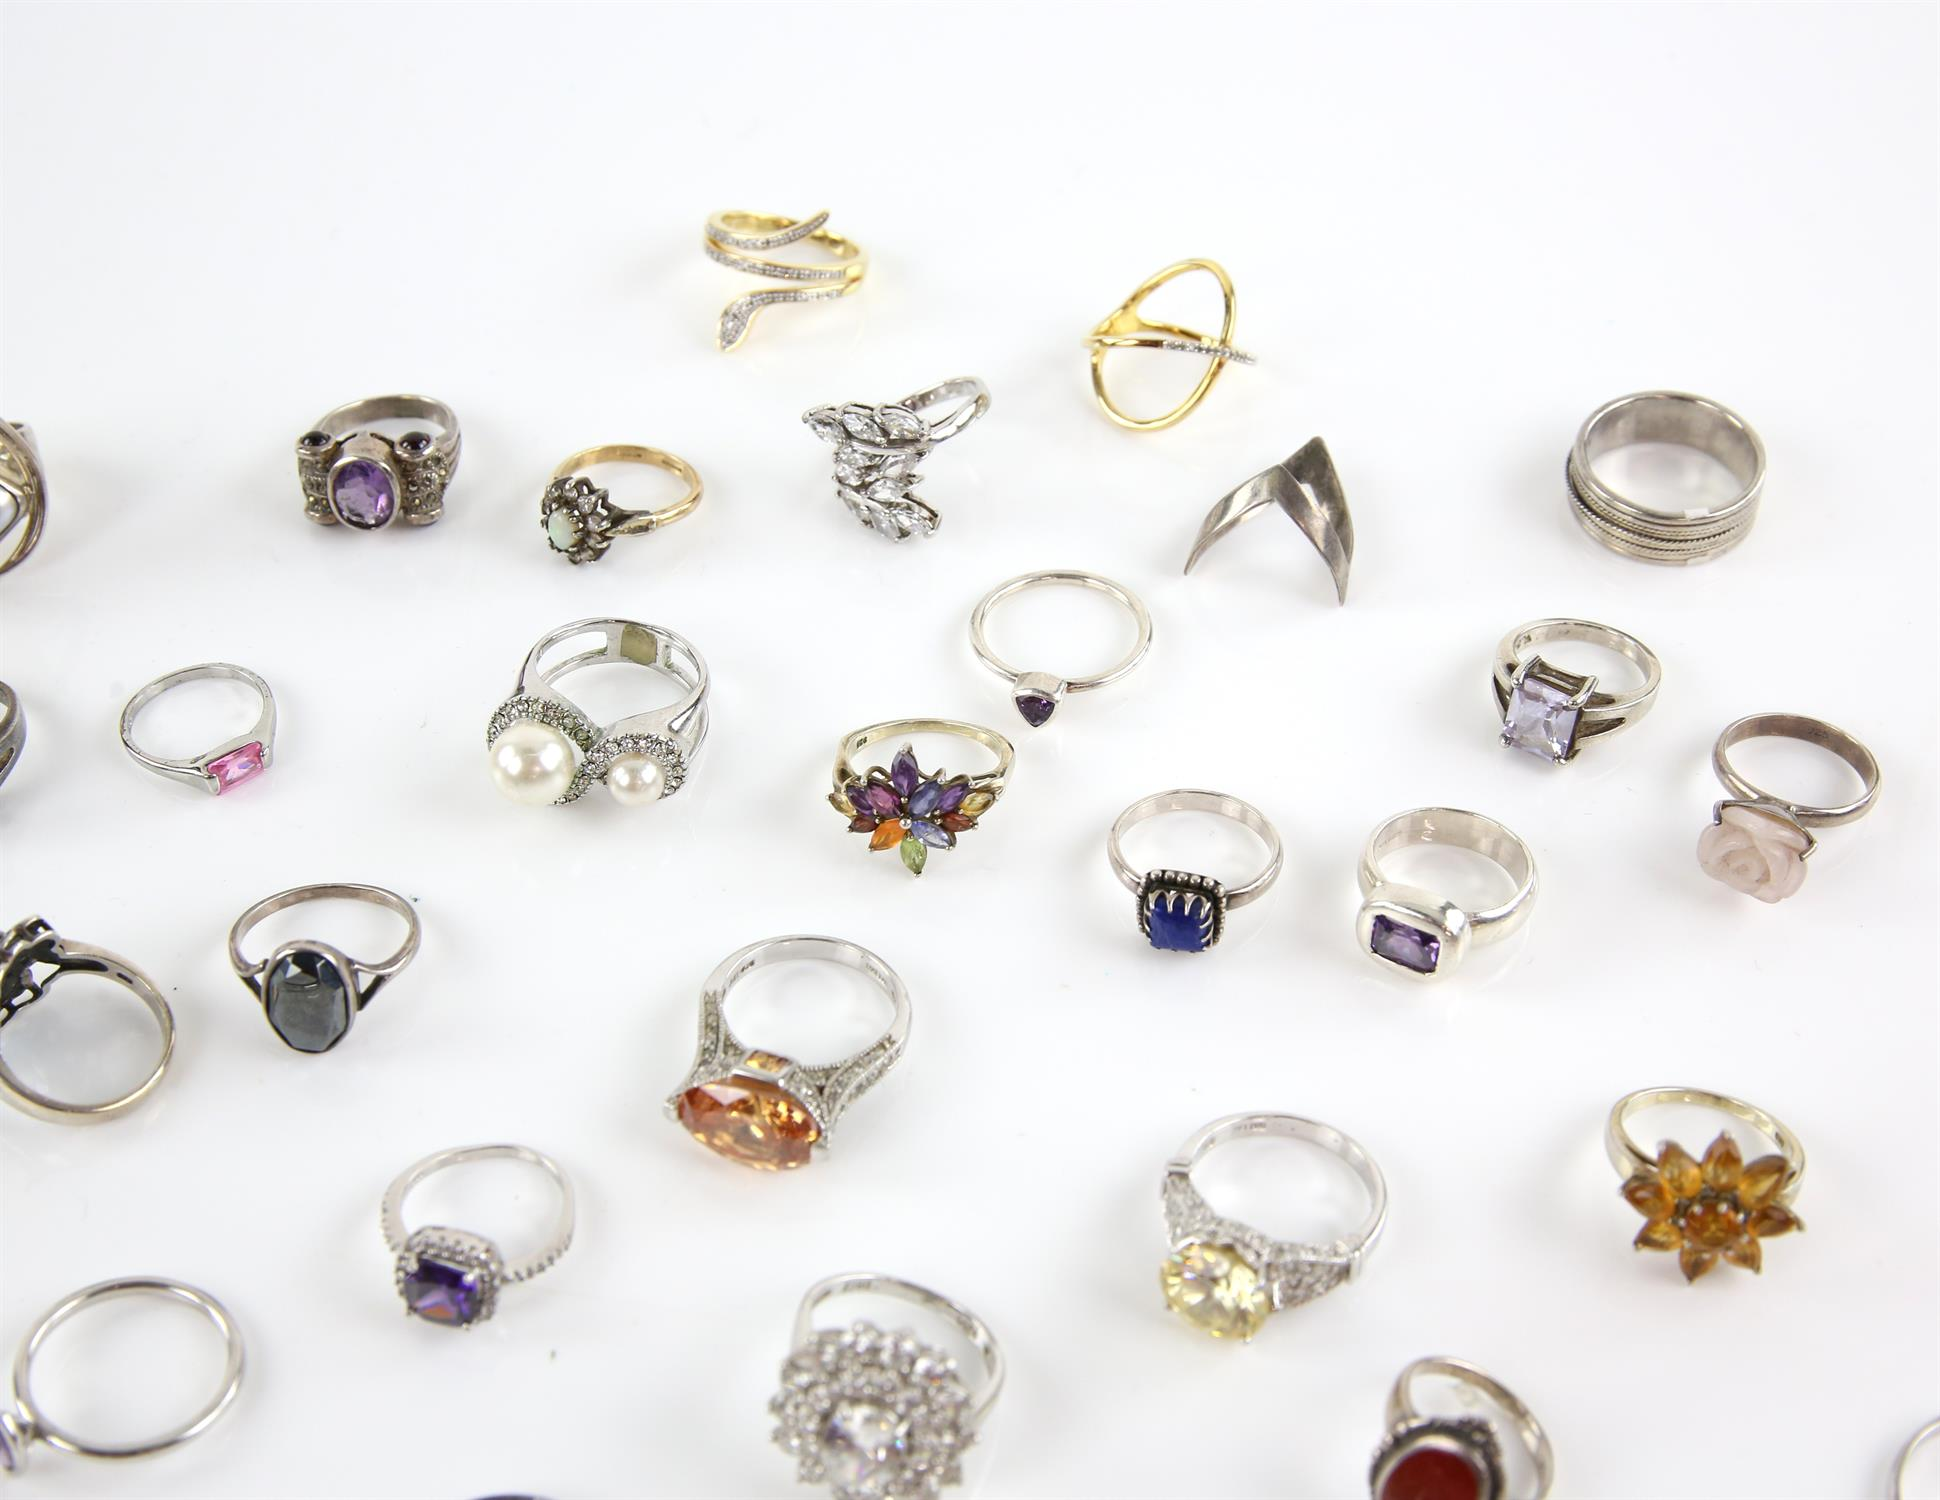 Selection of rings, forty in total, one signet ring size Q, pink princess cut paste ring, size U, - Image 2 of 3